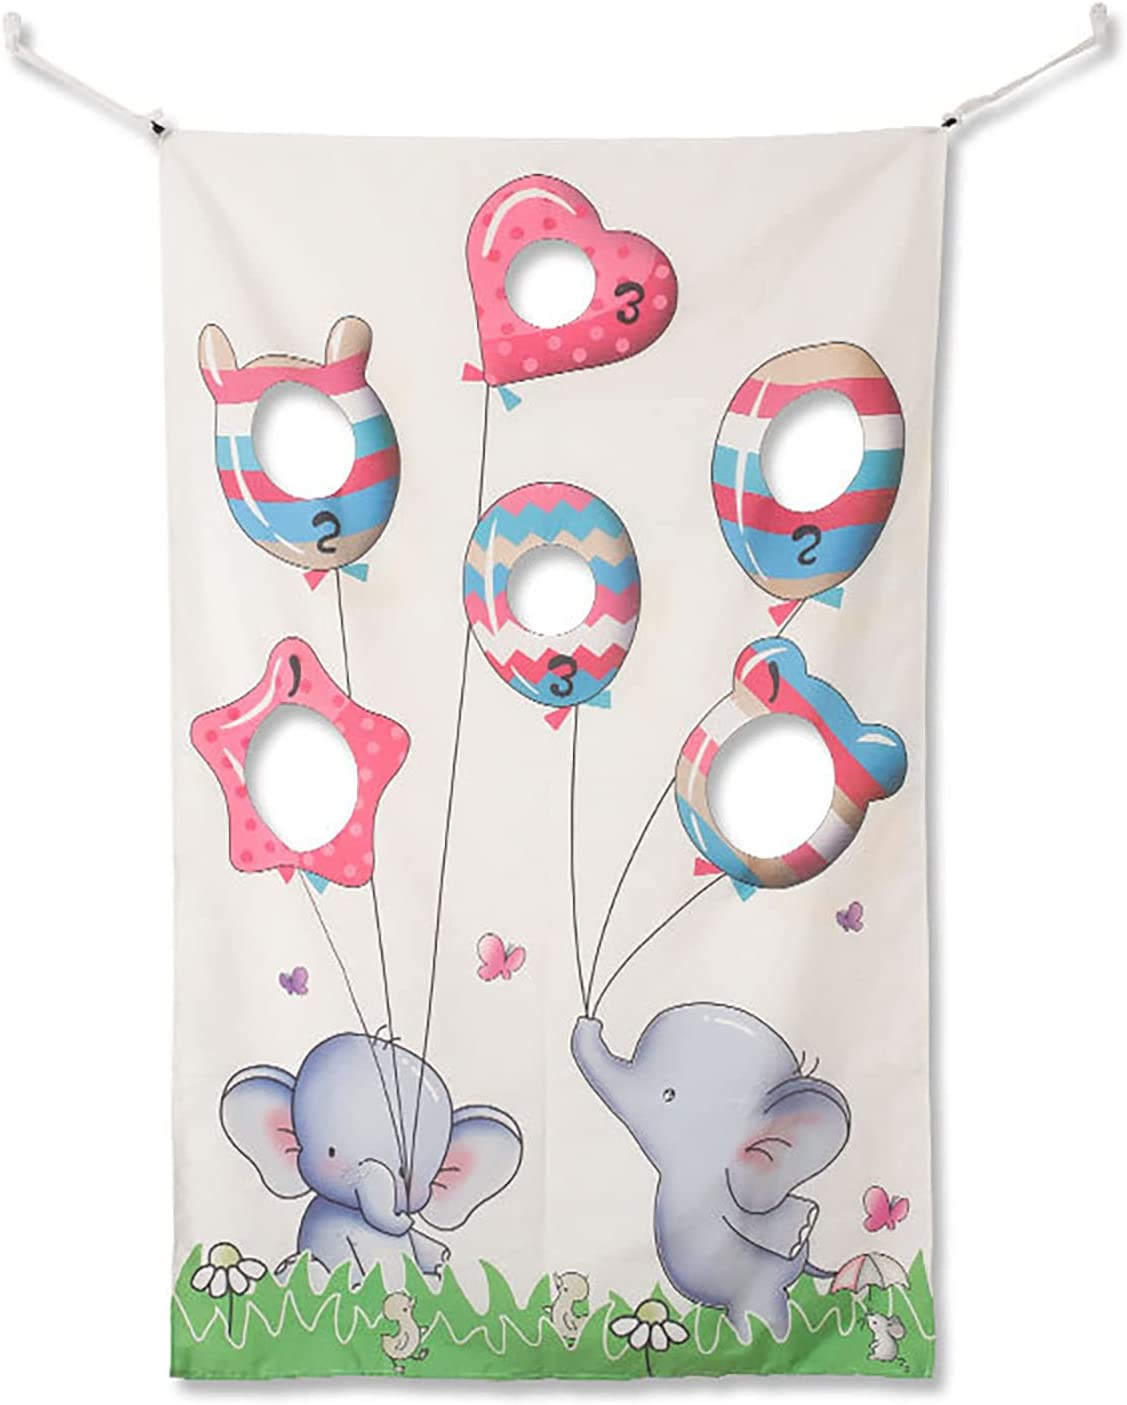 Ruiqas Toss Games NEW before selling Banner with Elephant Bags 3 Bean 2021